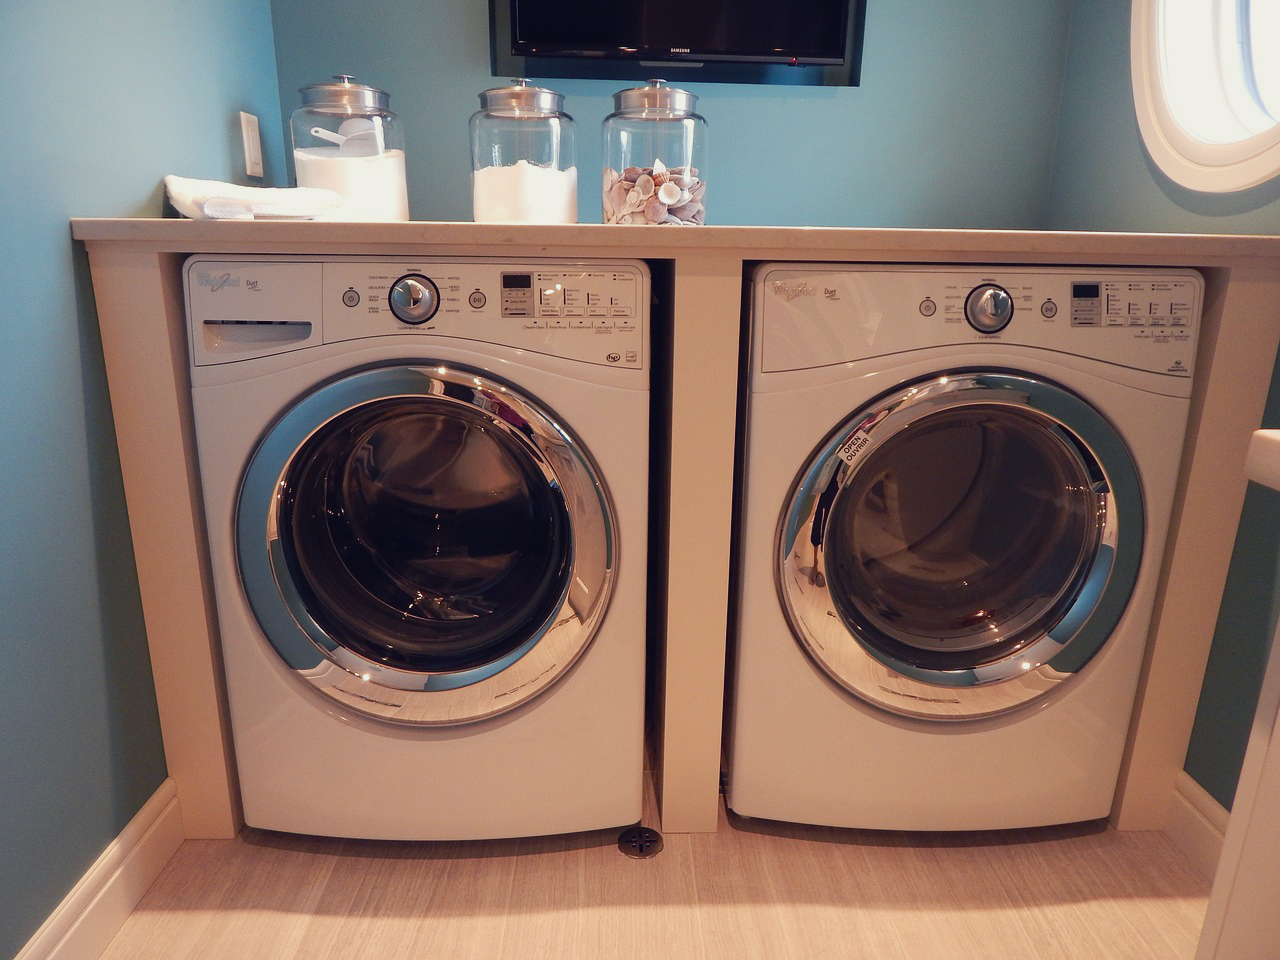 declutter your bathroom laundry room 8 things to go. Black Bedroom Furniture Sets. Home Design Ideas